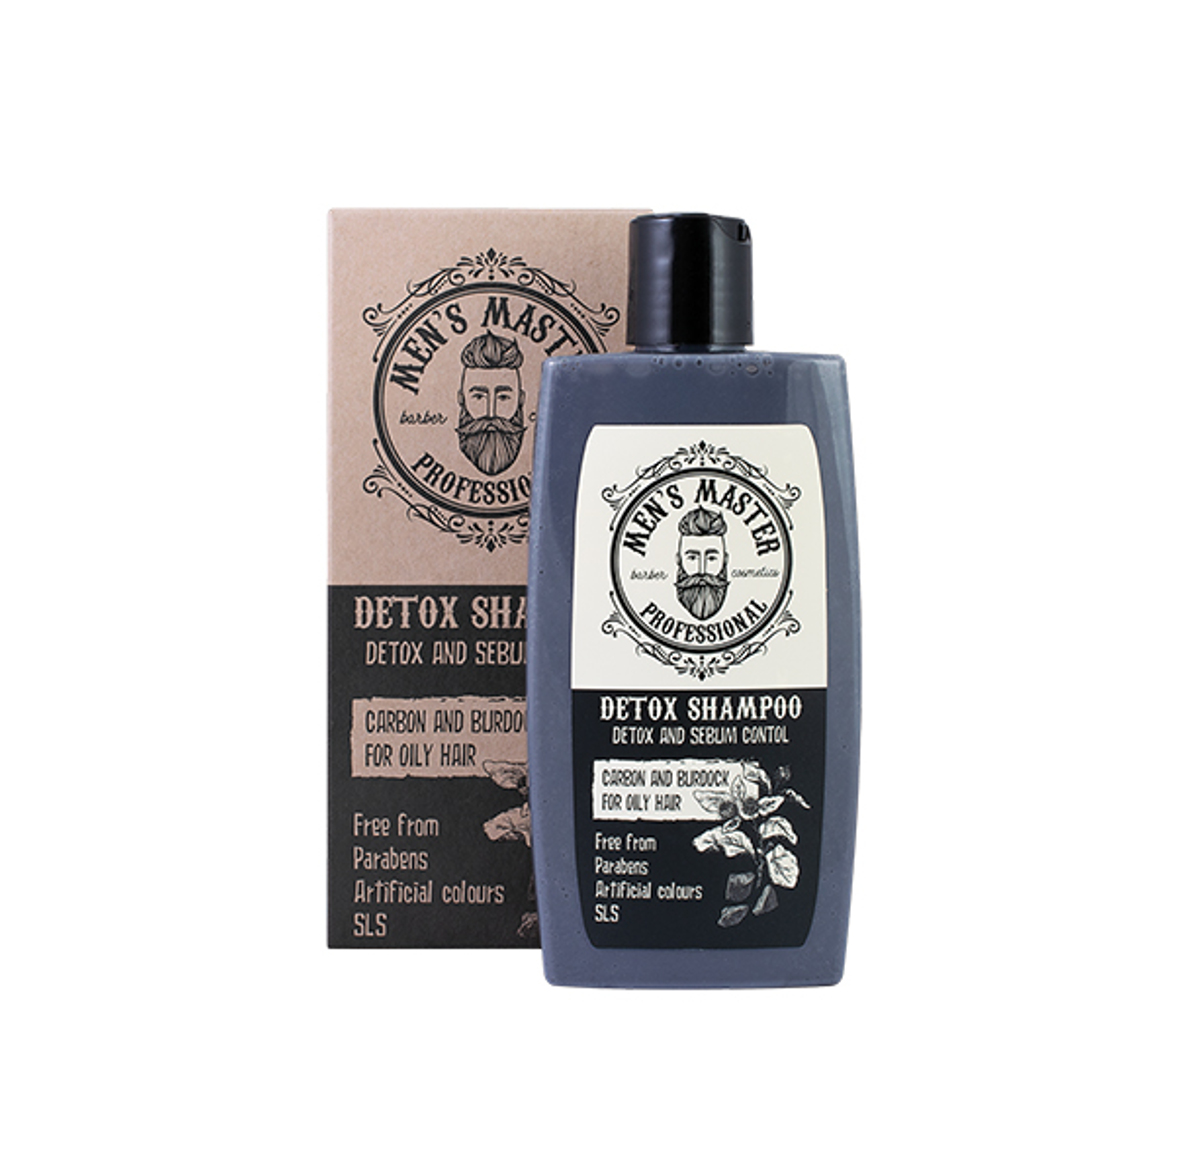 Detoxifying Hair Loss Shampoo Men's Master Professional